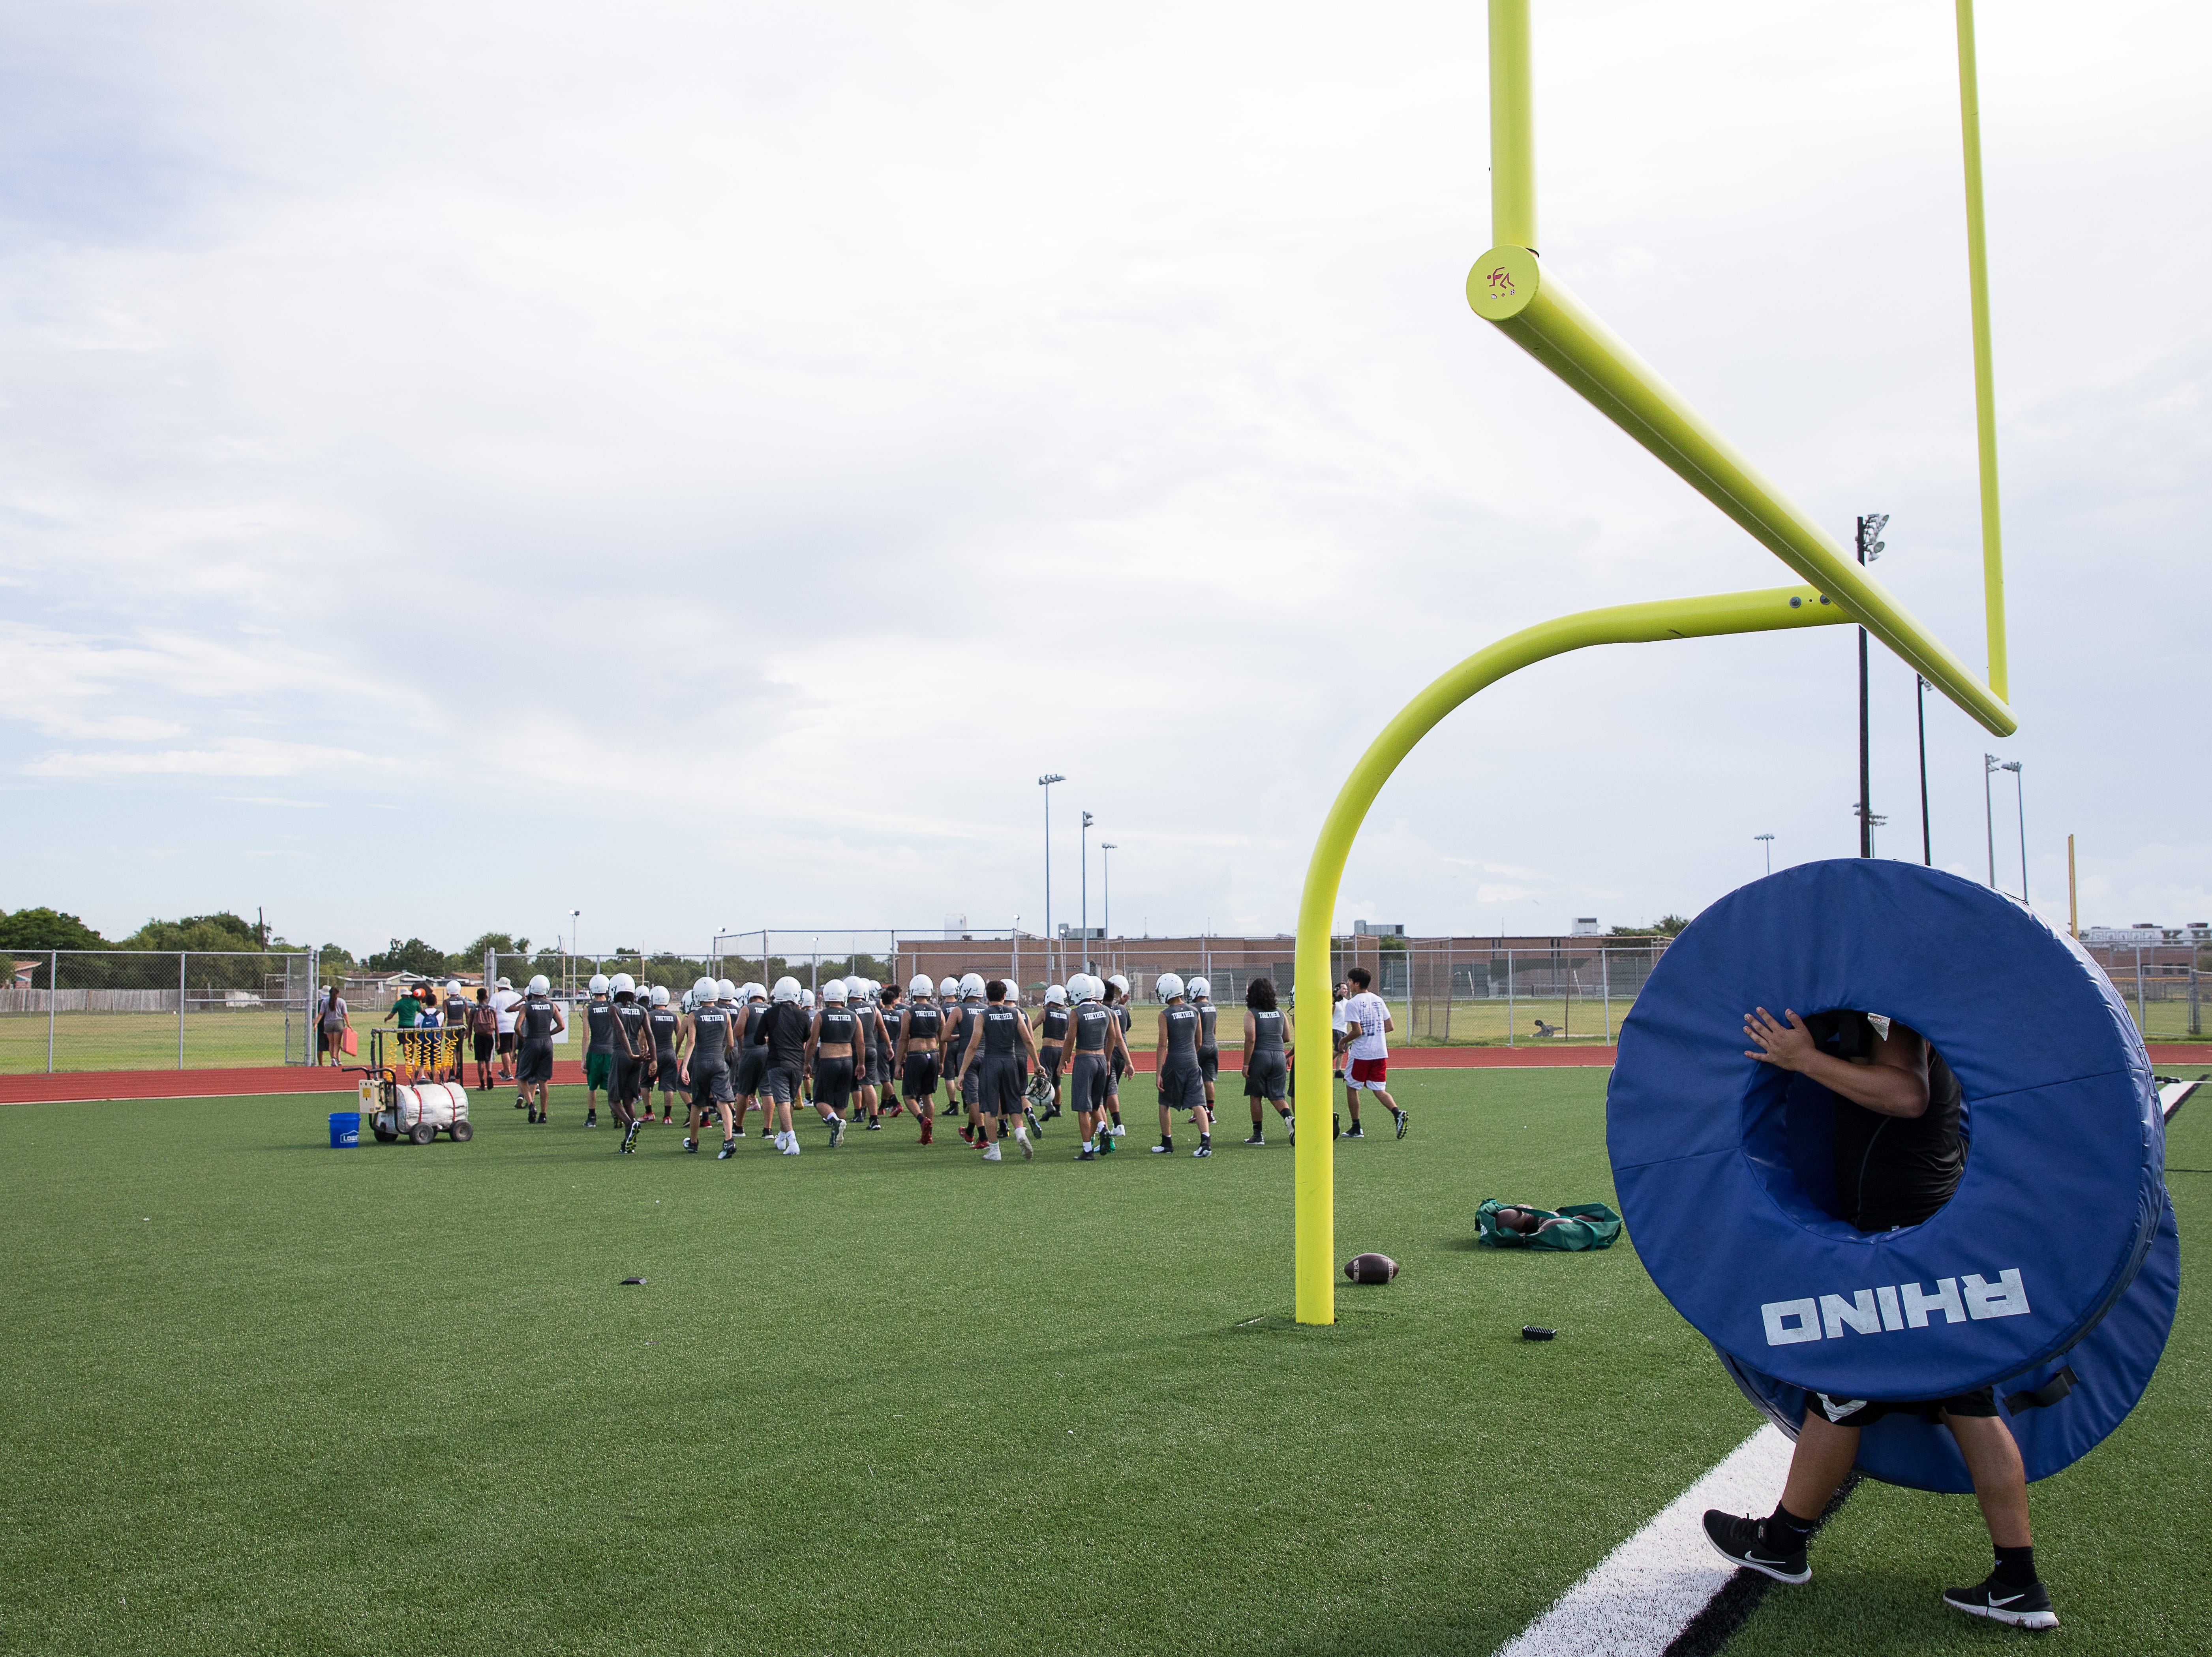 The first day of football practice for the 2018 season at King High School on Monday, Aug. 6, 2018.